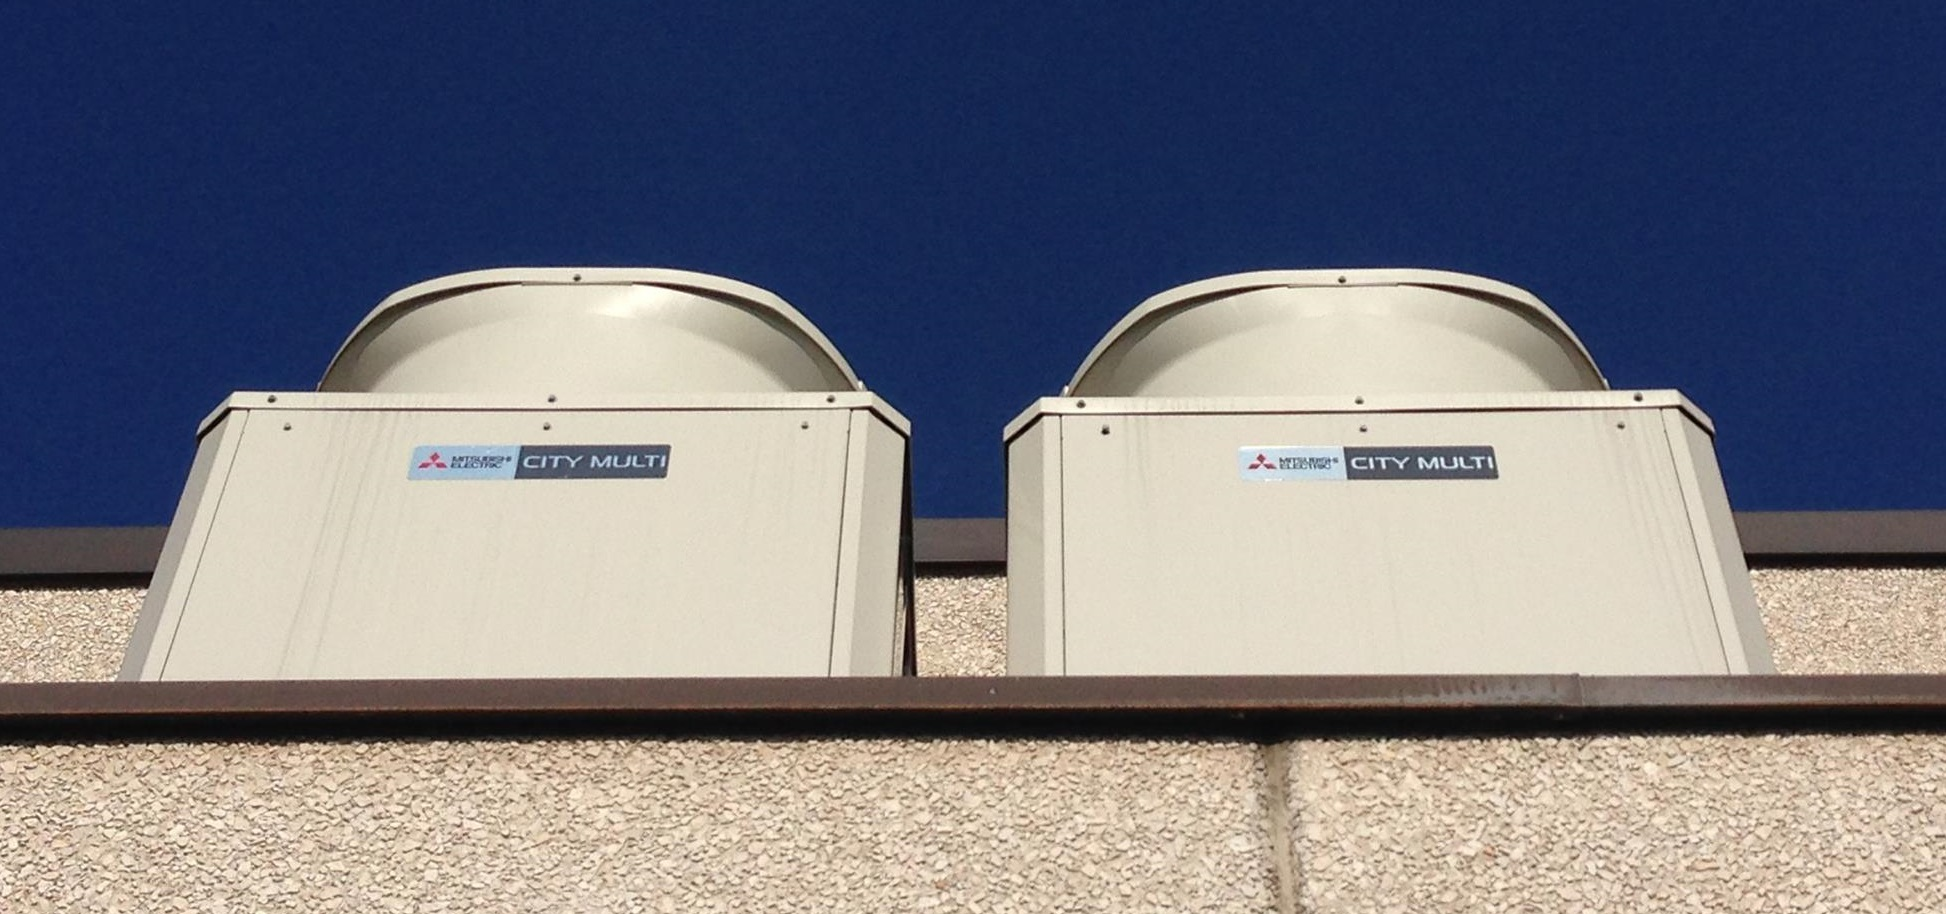 MITSUBISHI ELECTRIC ARIABOX